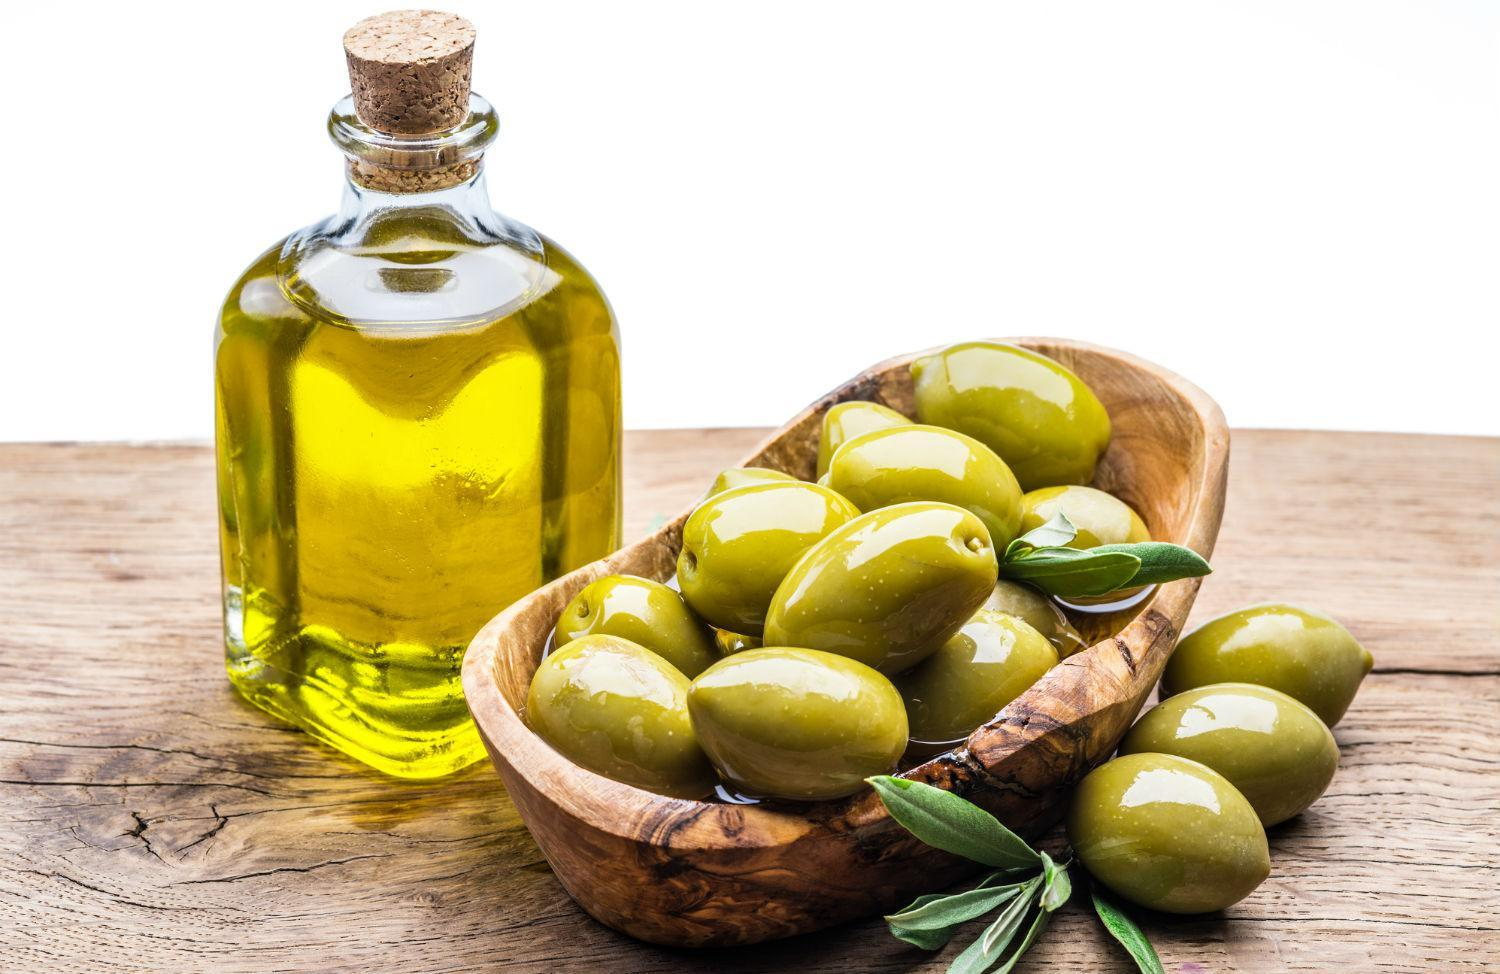 Olive Oil For The Face What Properties Does It Have?